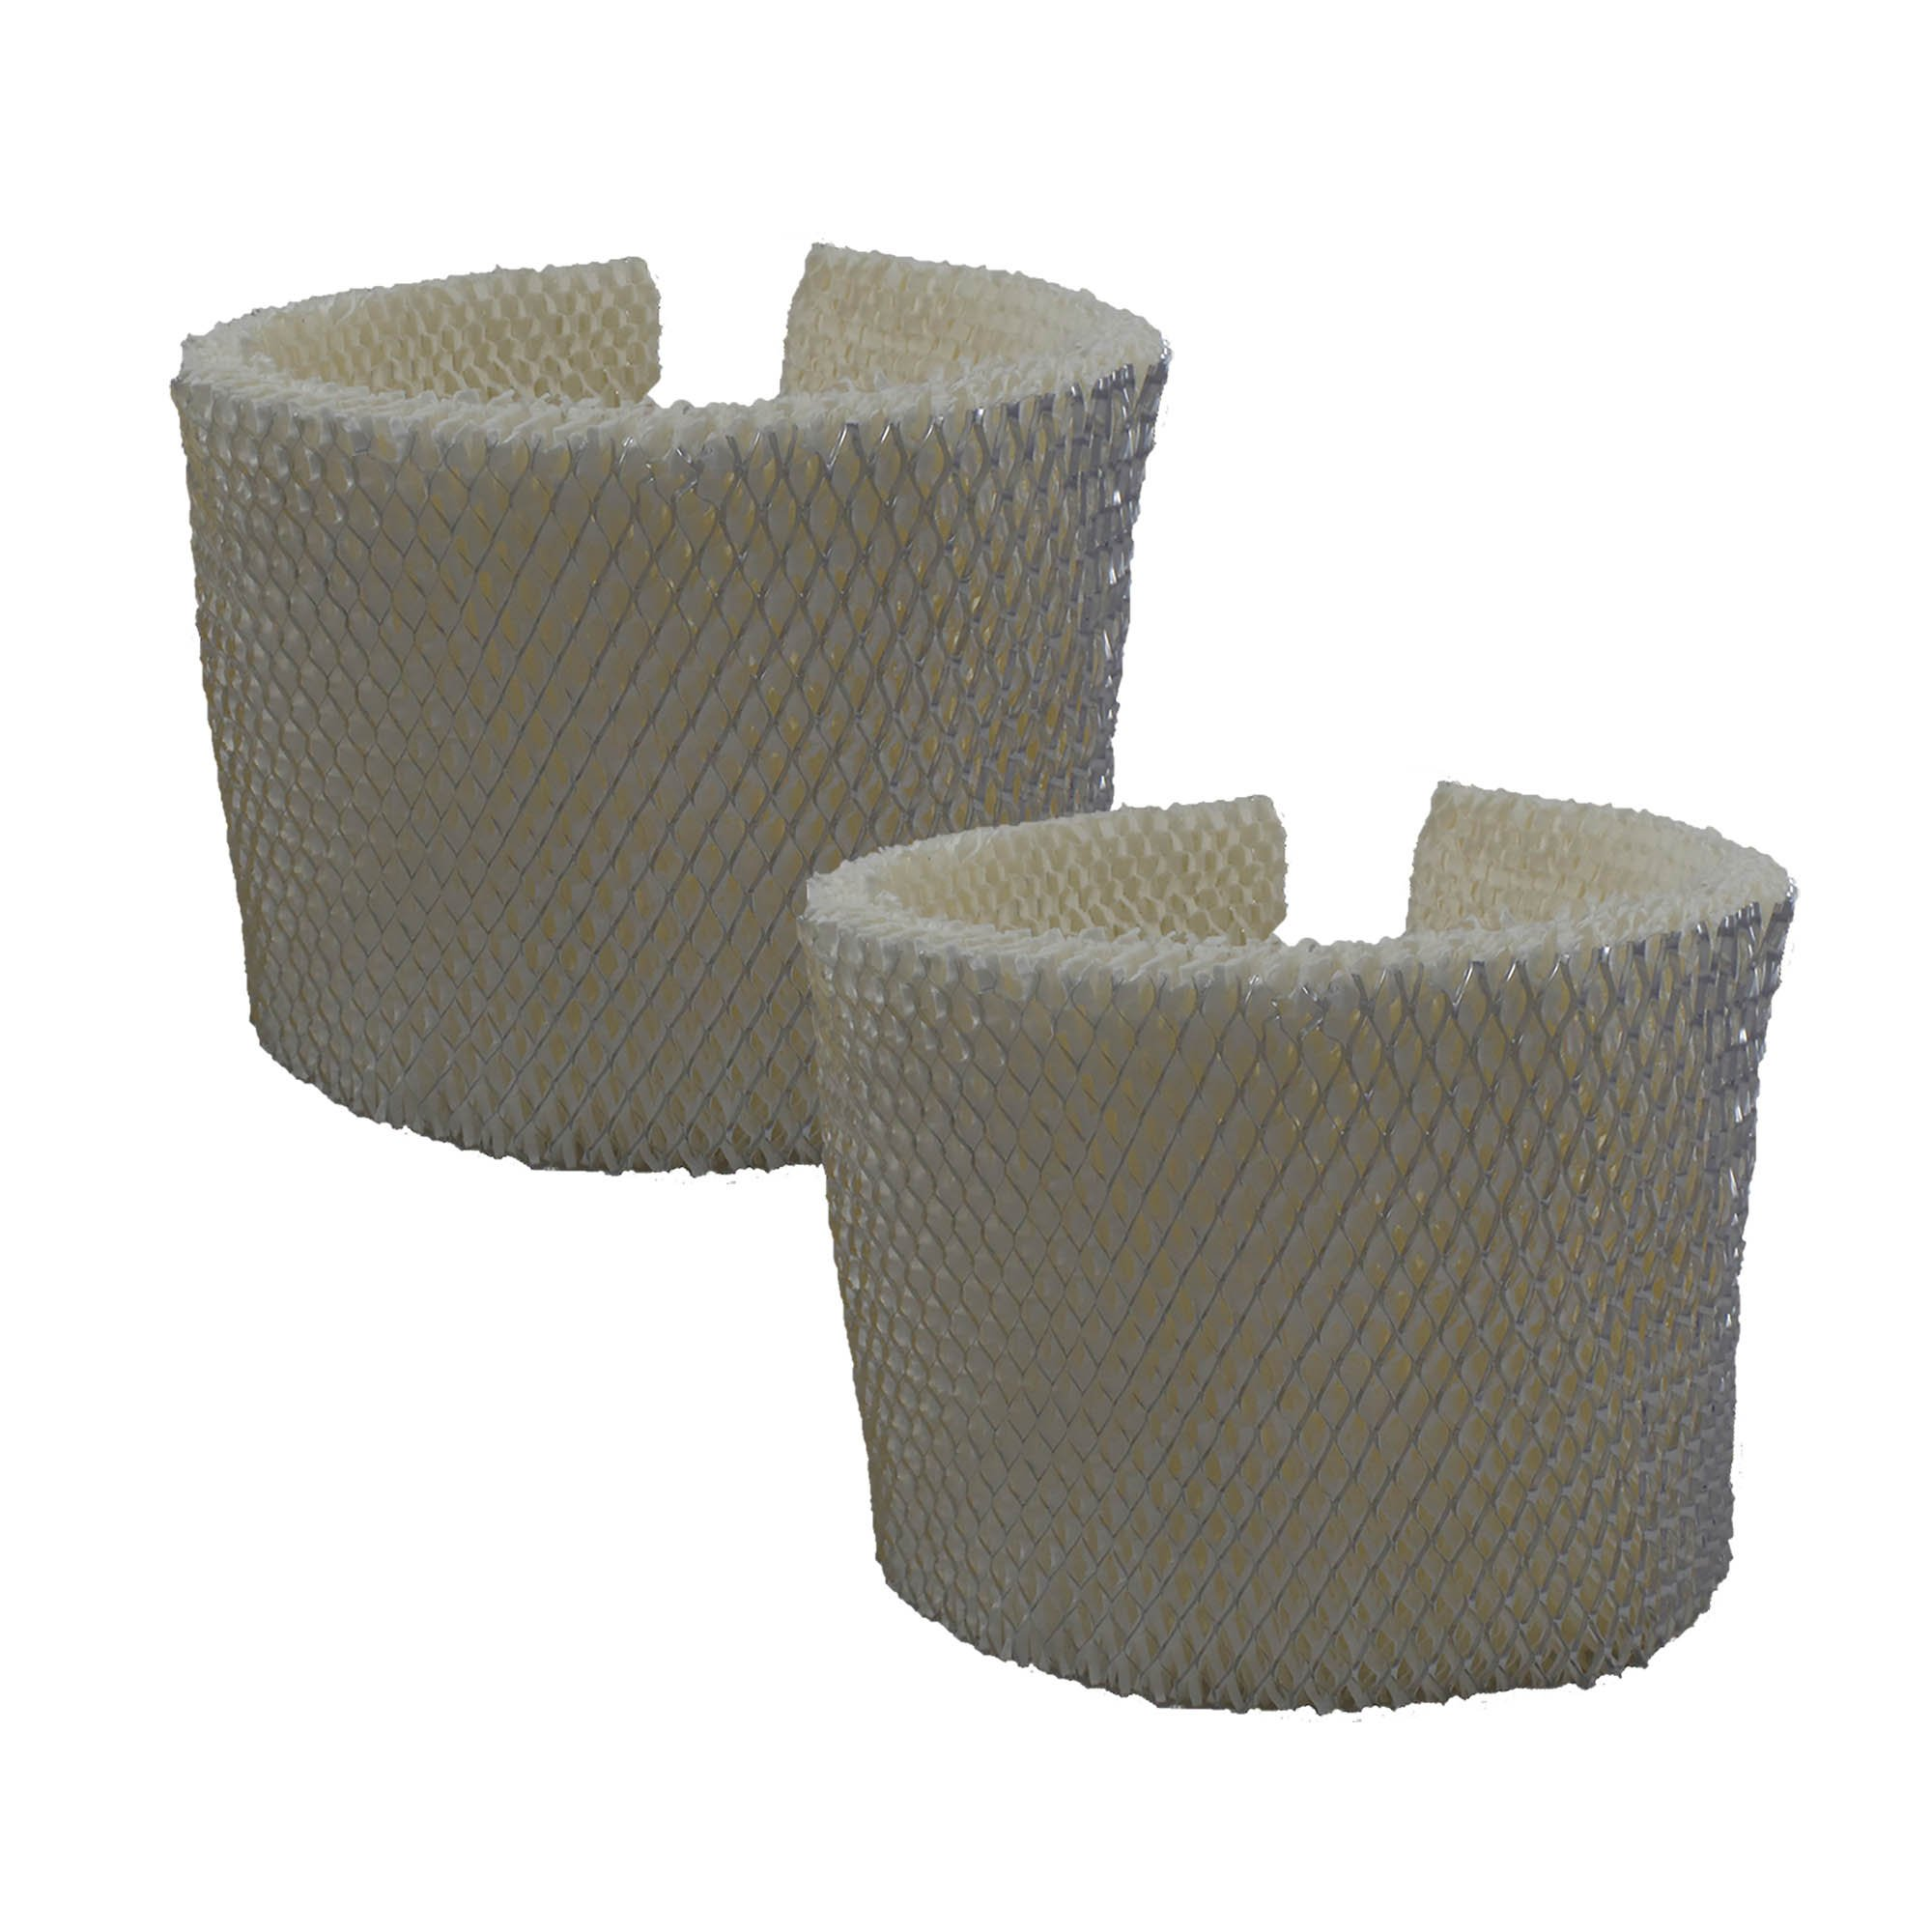 Air Filter Factory 2 PACK Compatible Replacement For Kenmore 144115 Humidifer Filter